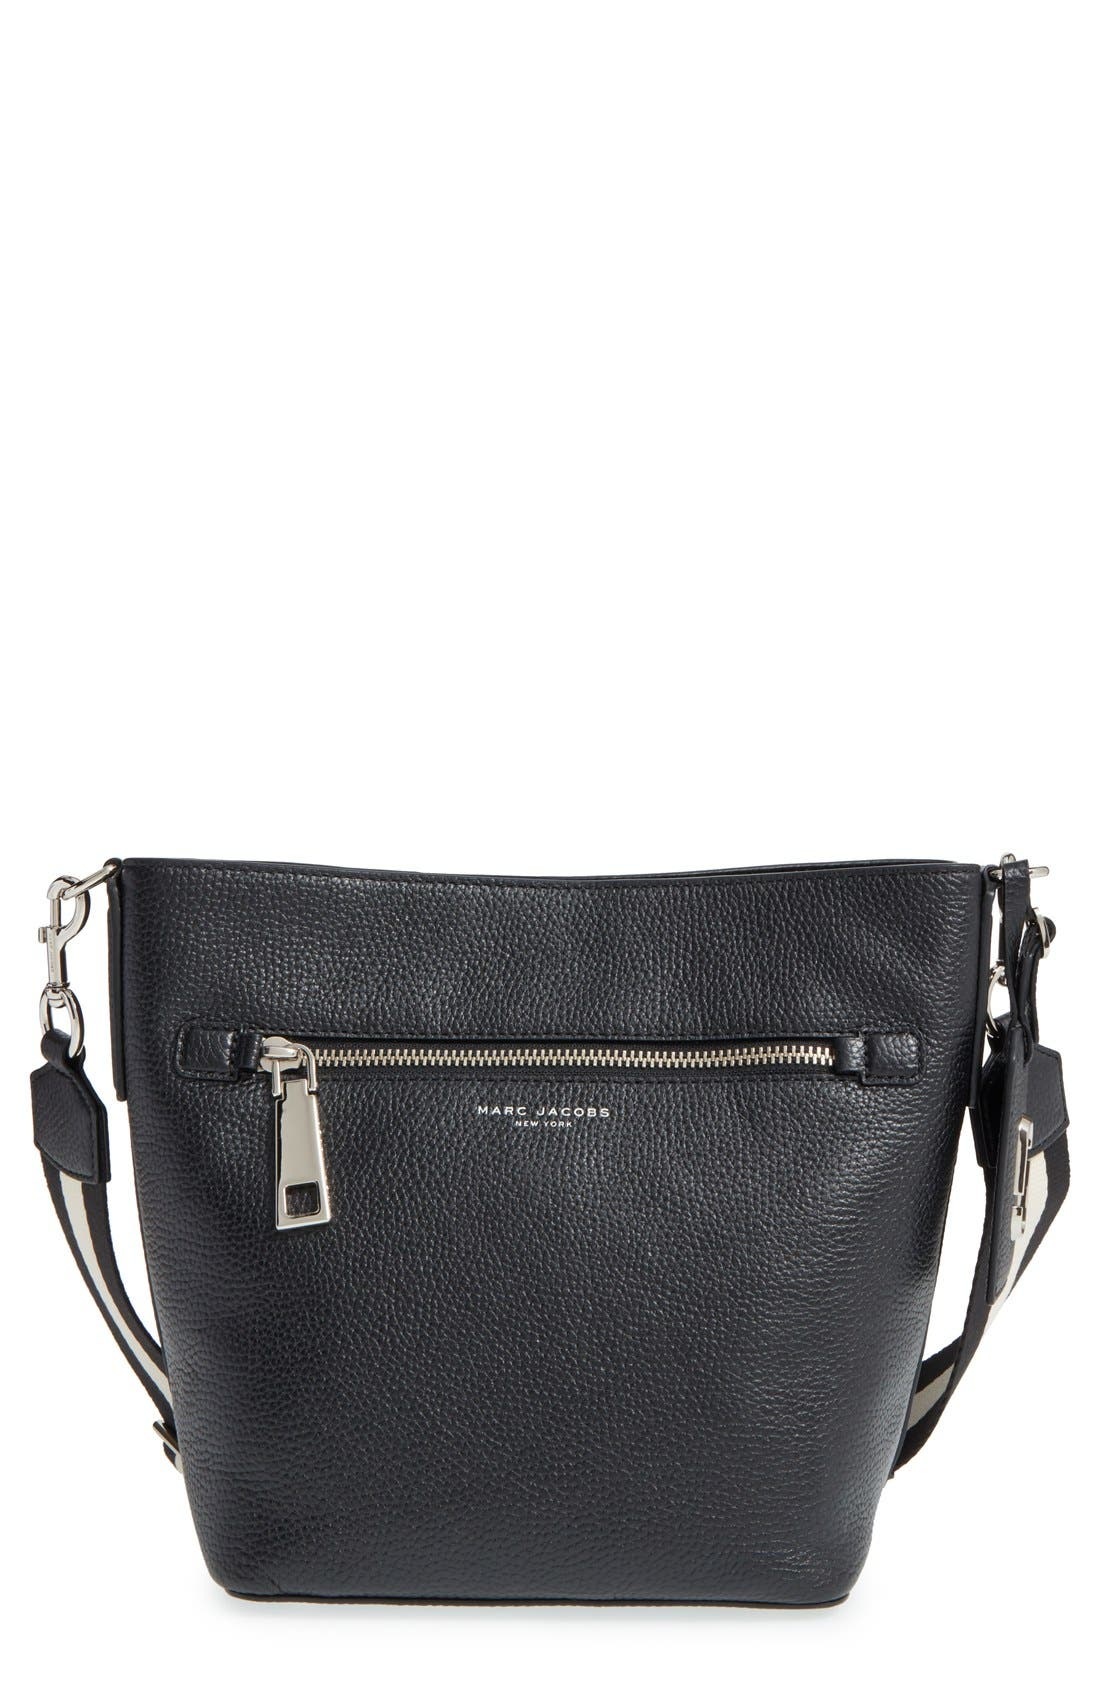 MARC JACOBS 'Gotham' Leather Bucket Bag, Main, color, 001